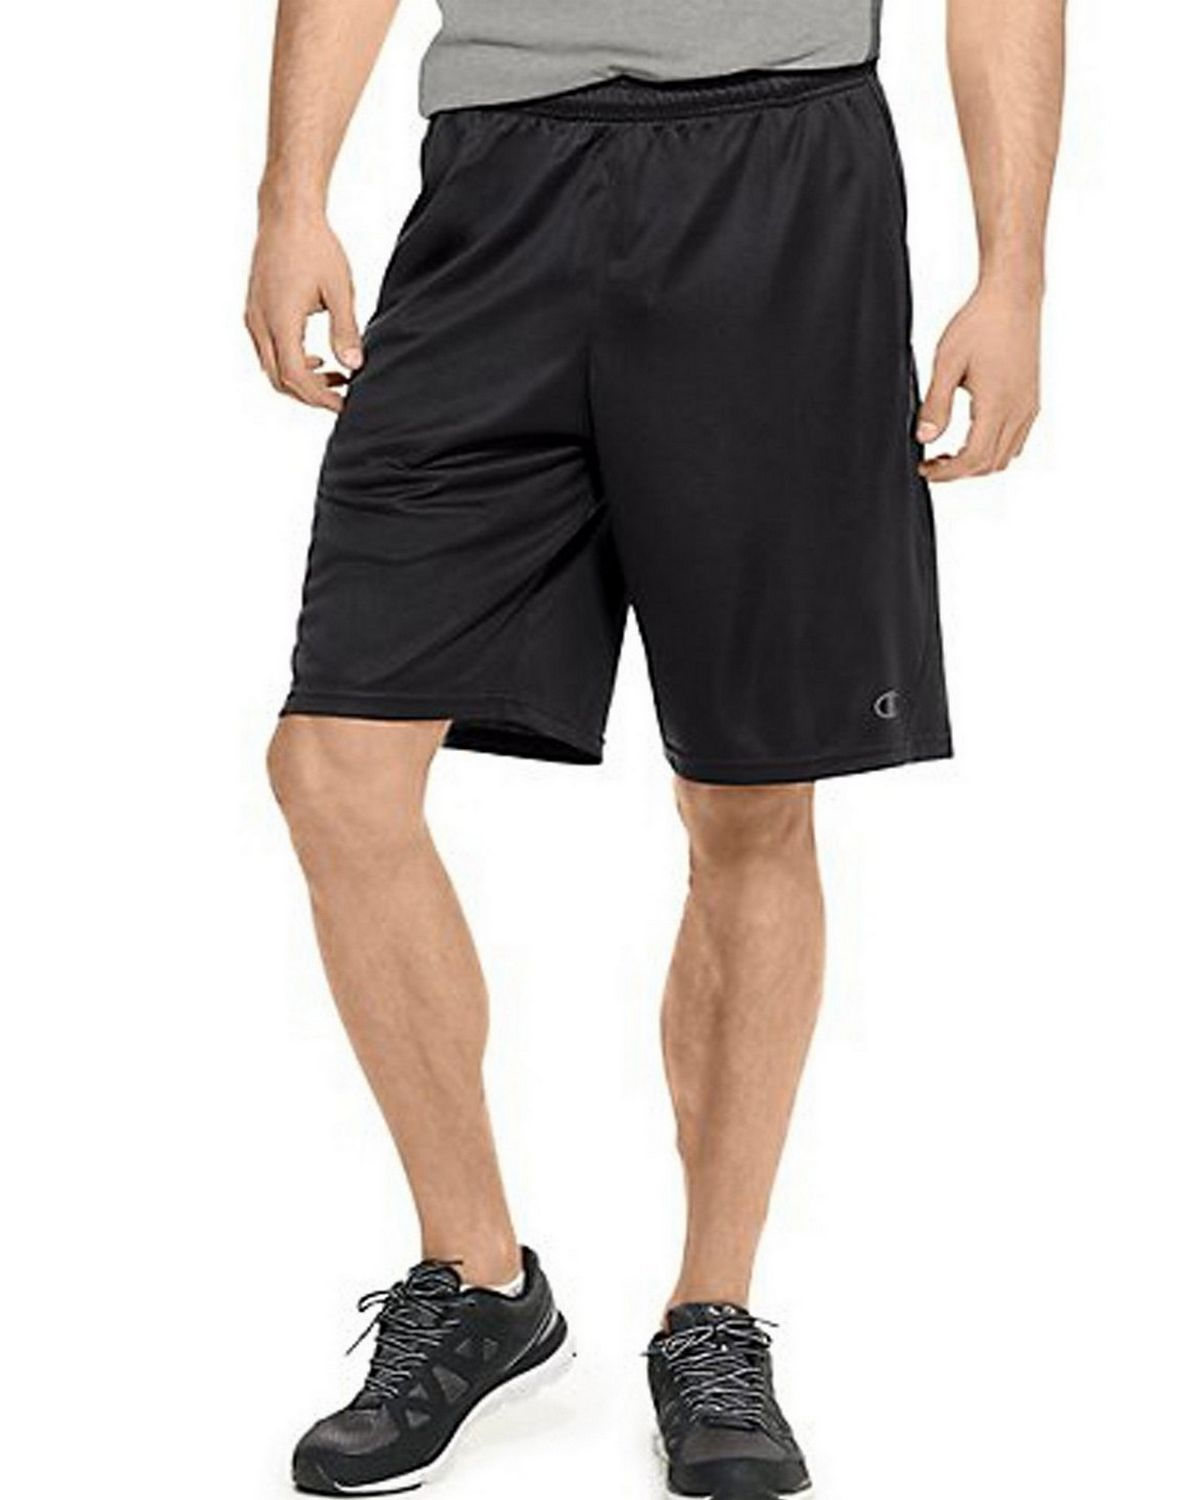 Champion 86703 Vapor PowerTrain Knit Shorts - Black - XXL 86703